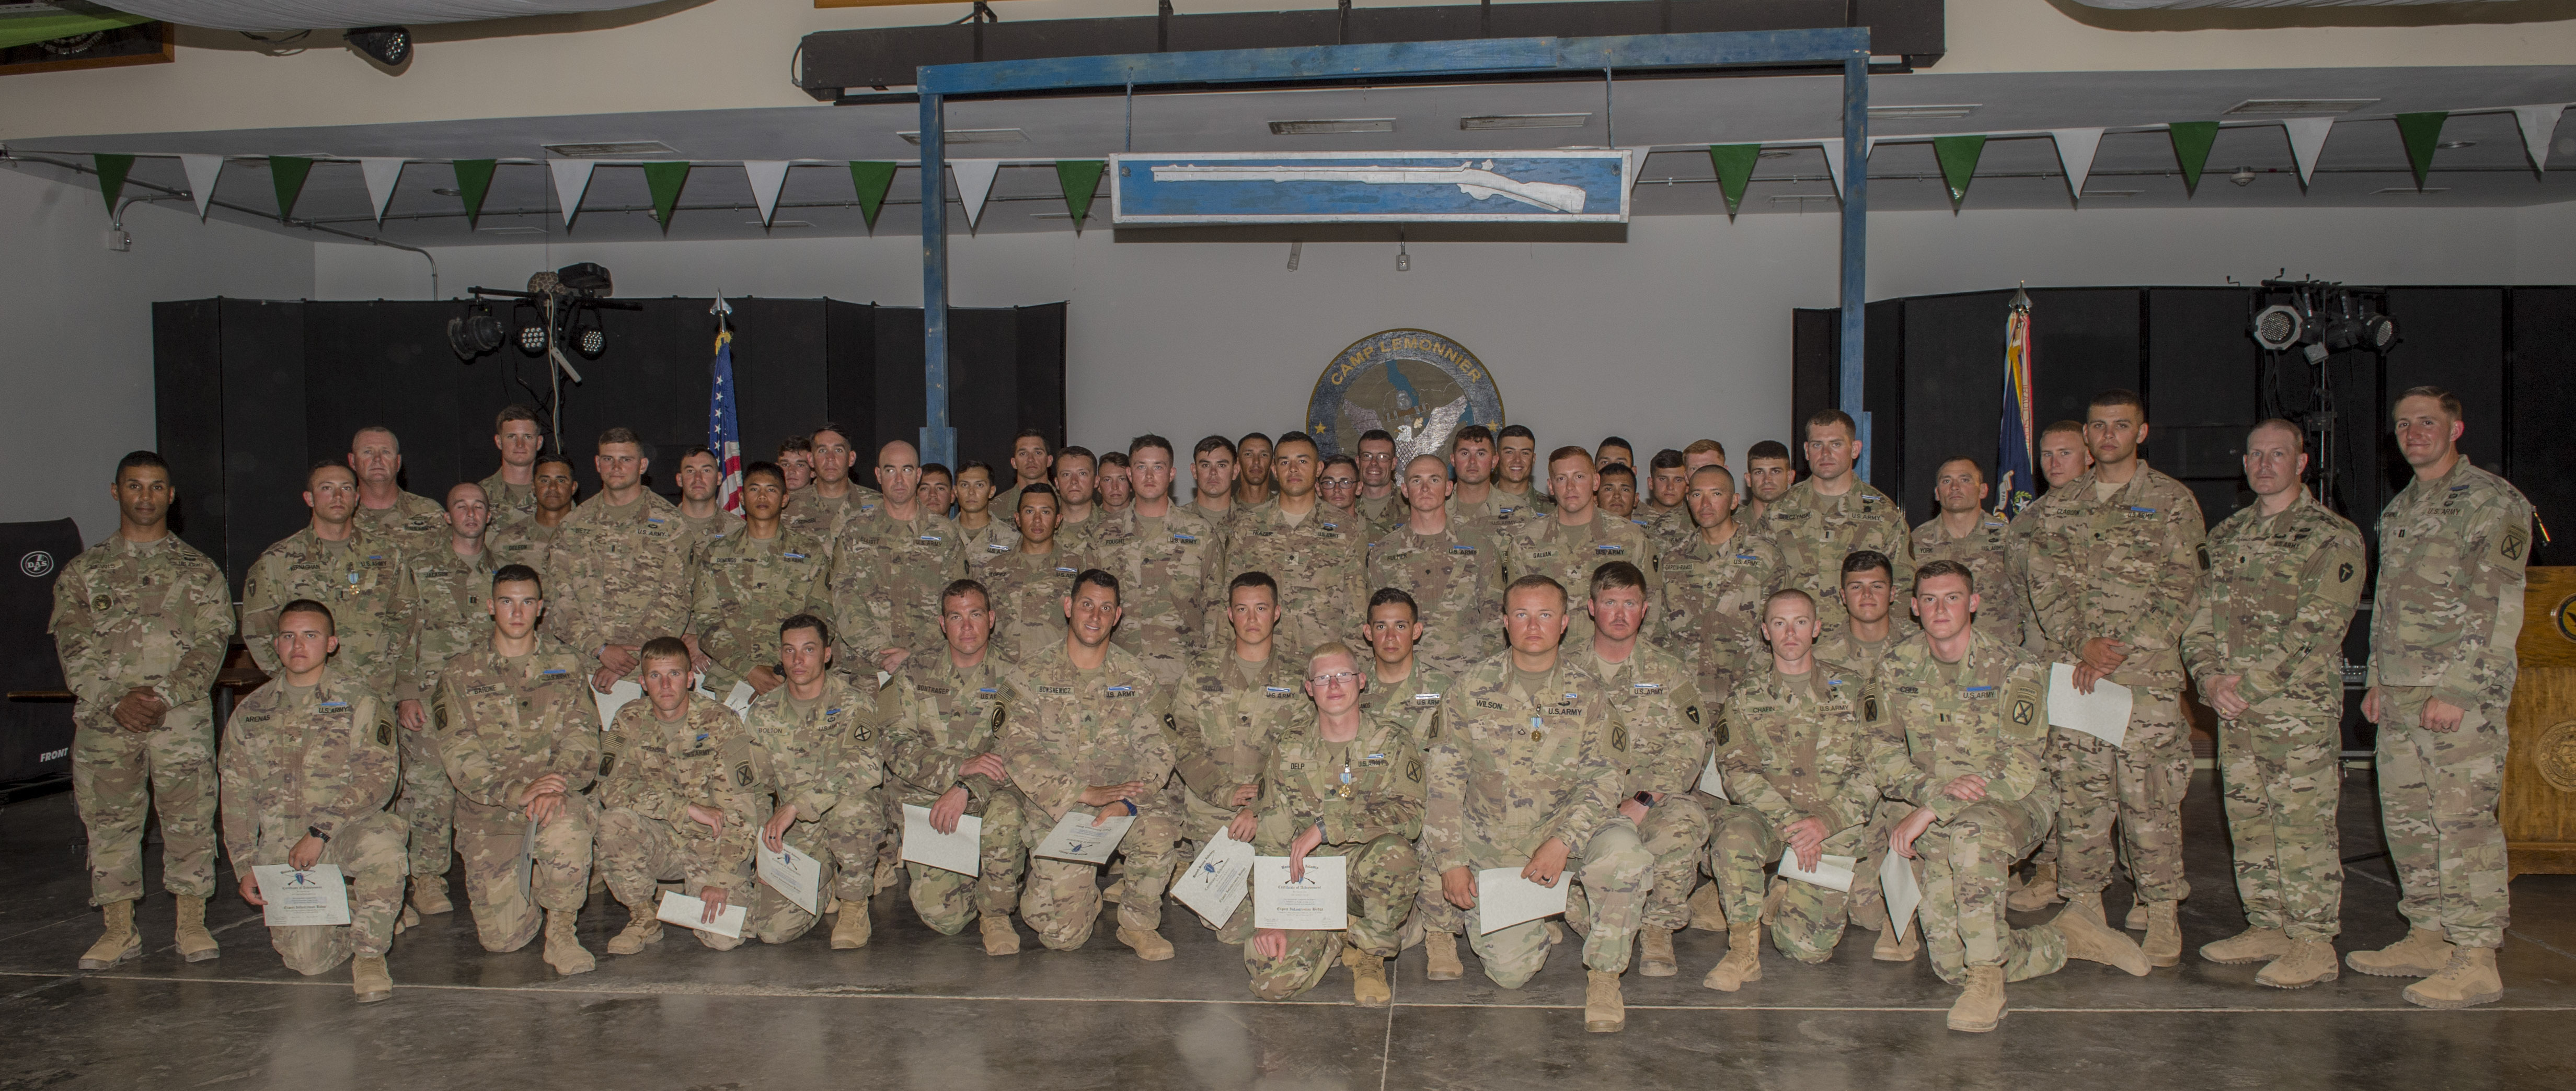 U.S. Army Soldiers assigned to Combined Joint Task Force - Horn of Africa pose for a photo after receiving their Expert Infantryman Badge during a ceremony at Camp Lemonnier, Djibouti, Feb. 2, 2018. After two weeks of training and five days of testing, 50 Soldiers completed the process to earn the coveted special skills badge that requires Soldiers to perform an Army Physical Fitness Test, day and night land navigation, a 12-mile forced march, and 30 individual tasks covering weapons, medical, and security patrol skills.  (U.S. Air Force photo by Staff Sgt. Timothy Moore)